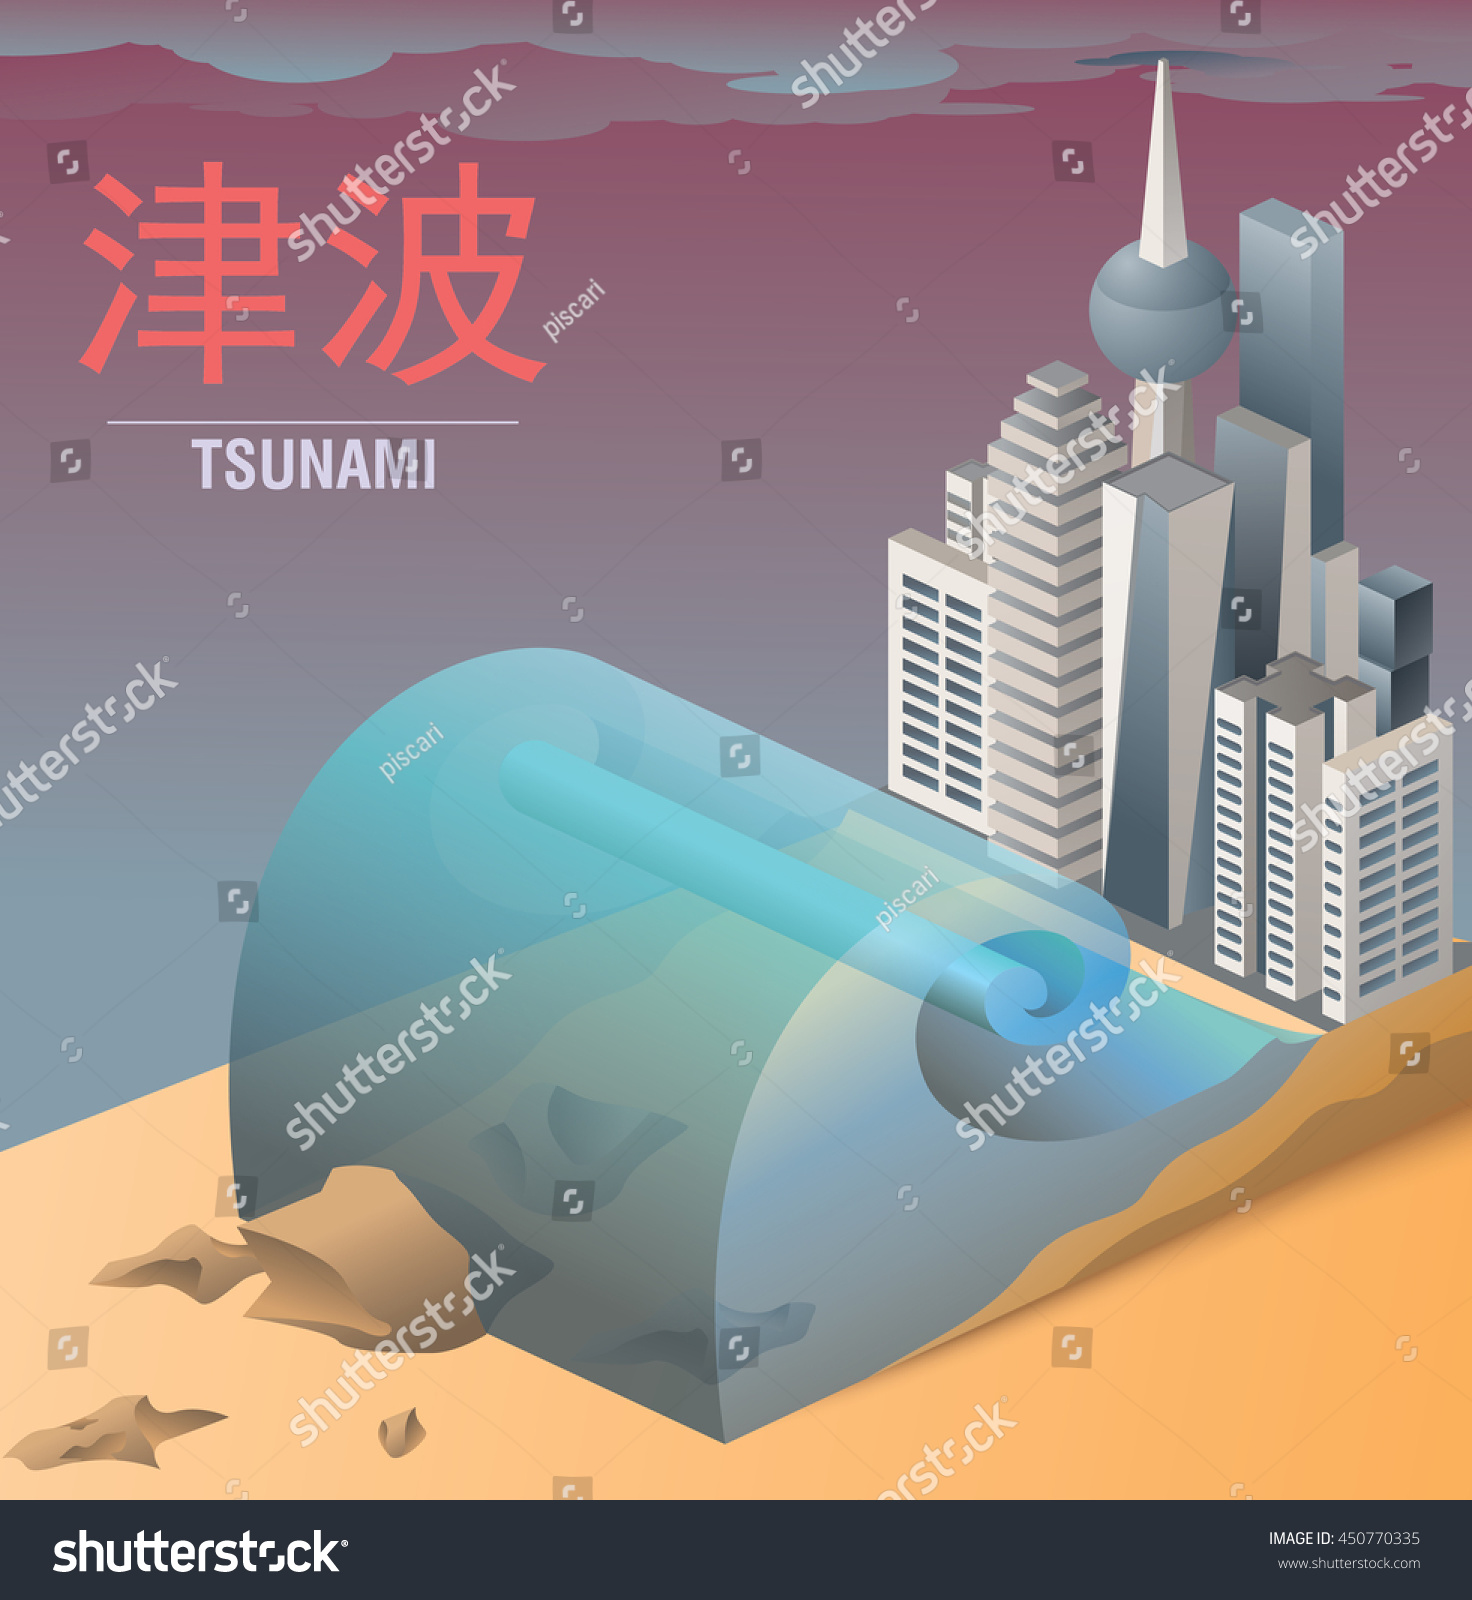 Tsunami seismic sea wave city buildings stock vector 450770335 tsunami seismic sea wave and city buildings illustration contains japanese characters and english translation below biocorpaavc Gallery